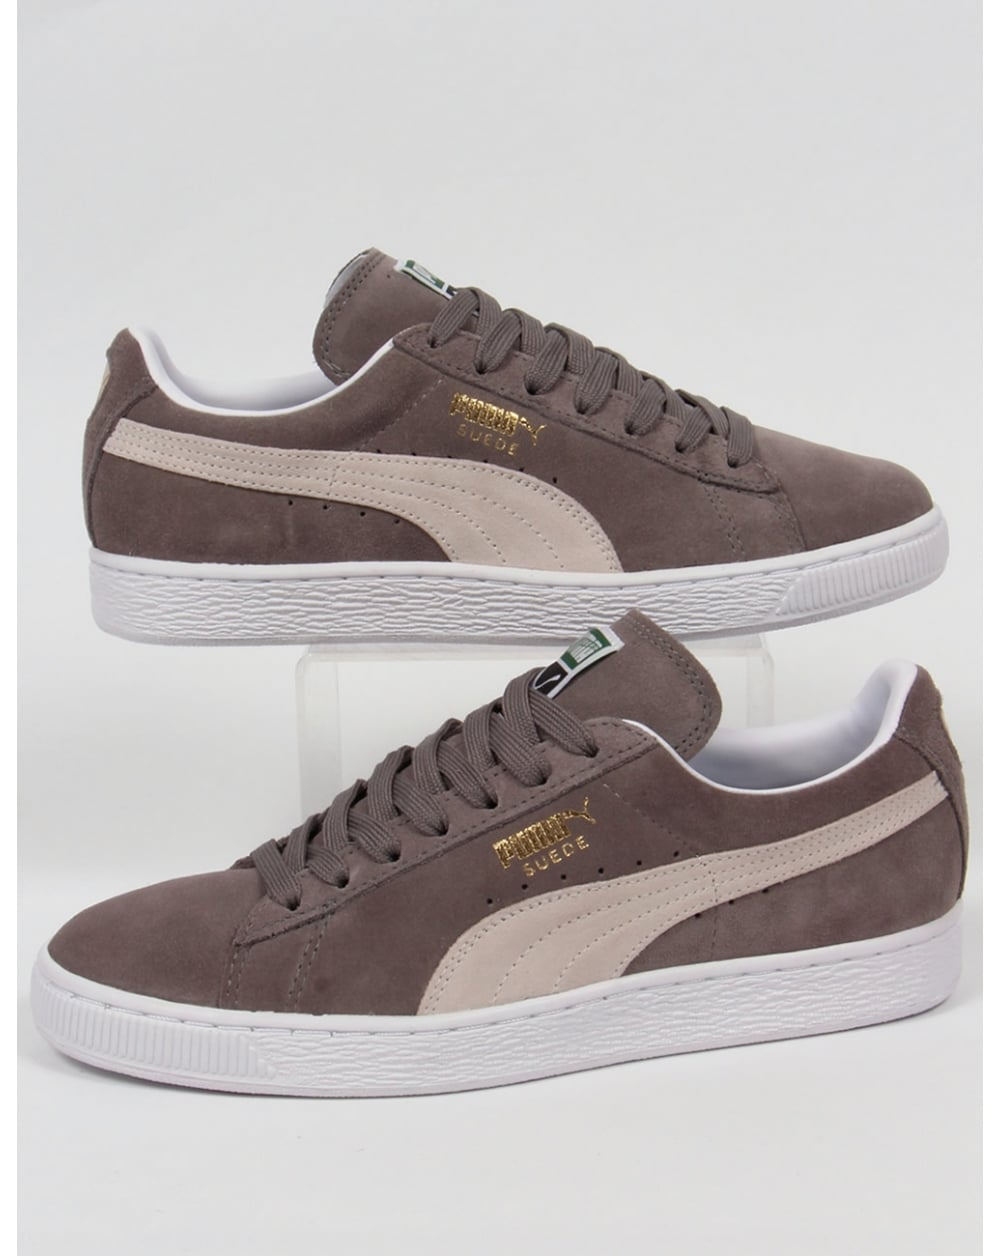 Puma Suede Classic Trainers Steeple